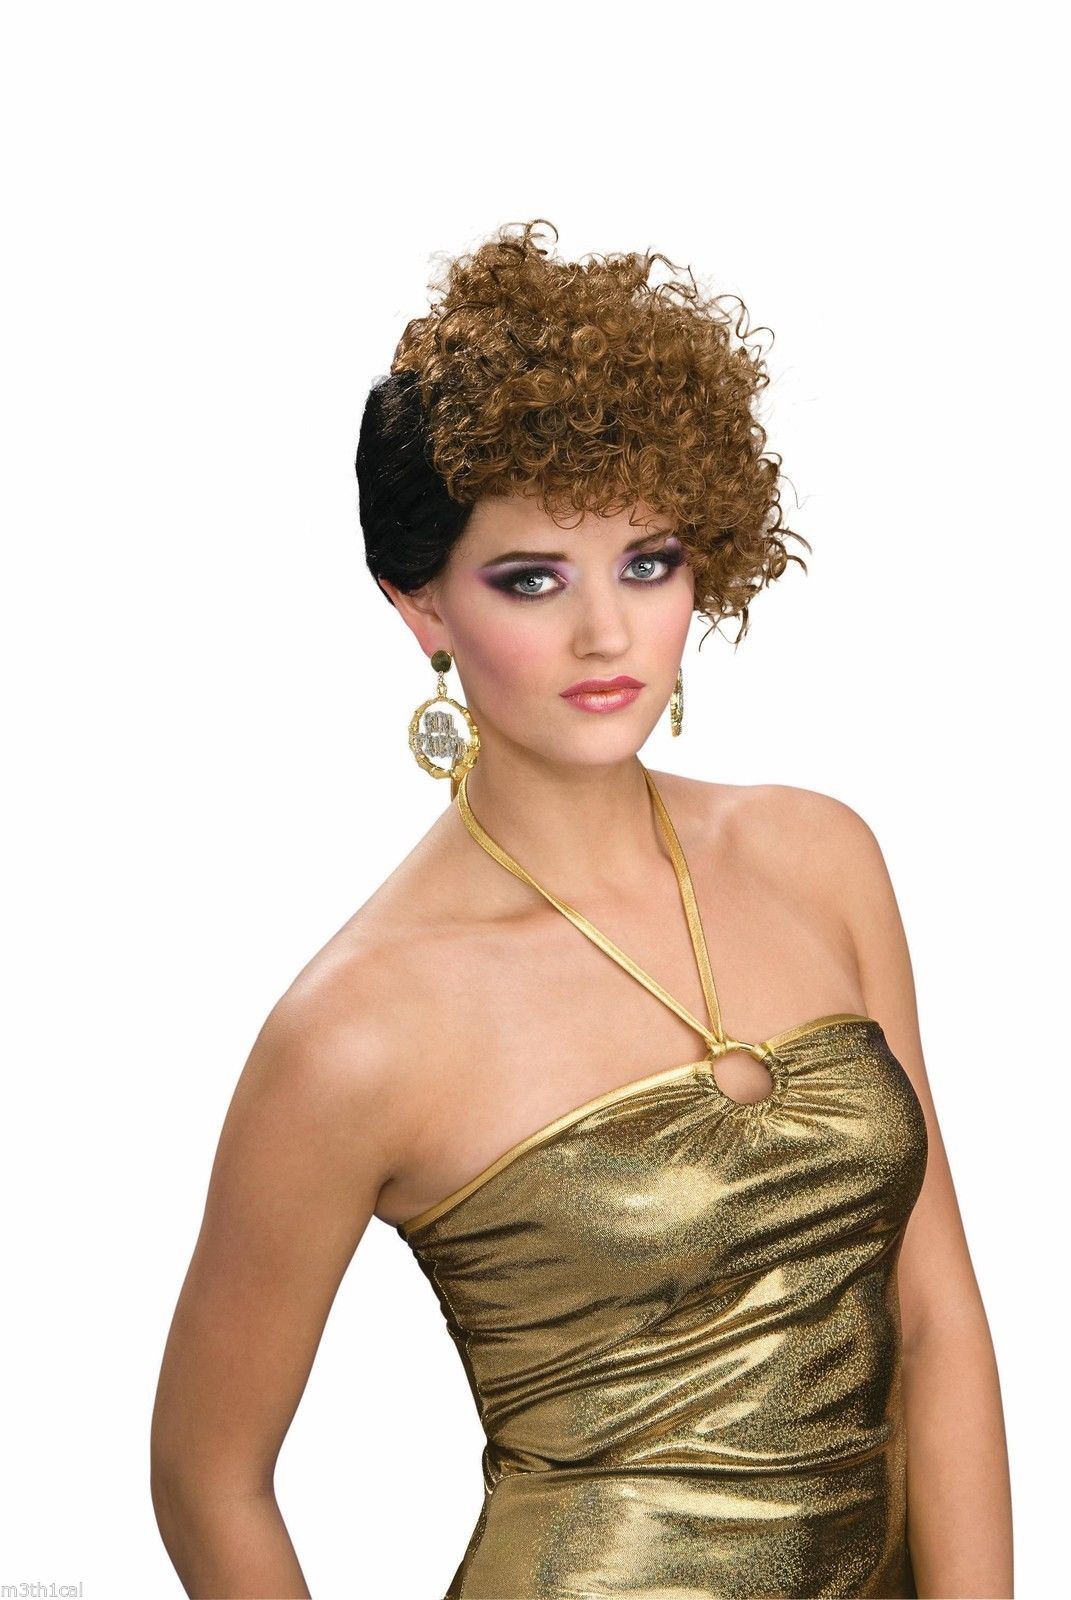 Hip Hop 80 S Style Home Girl Curly Curl Wig Hair Halloween Costume